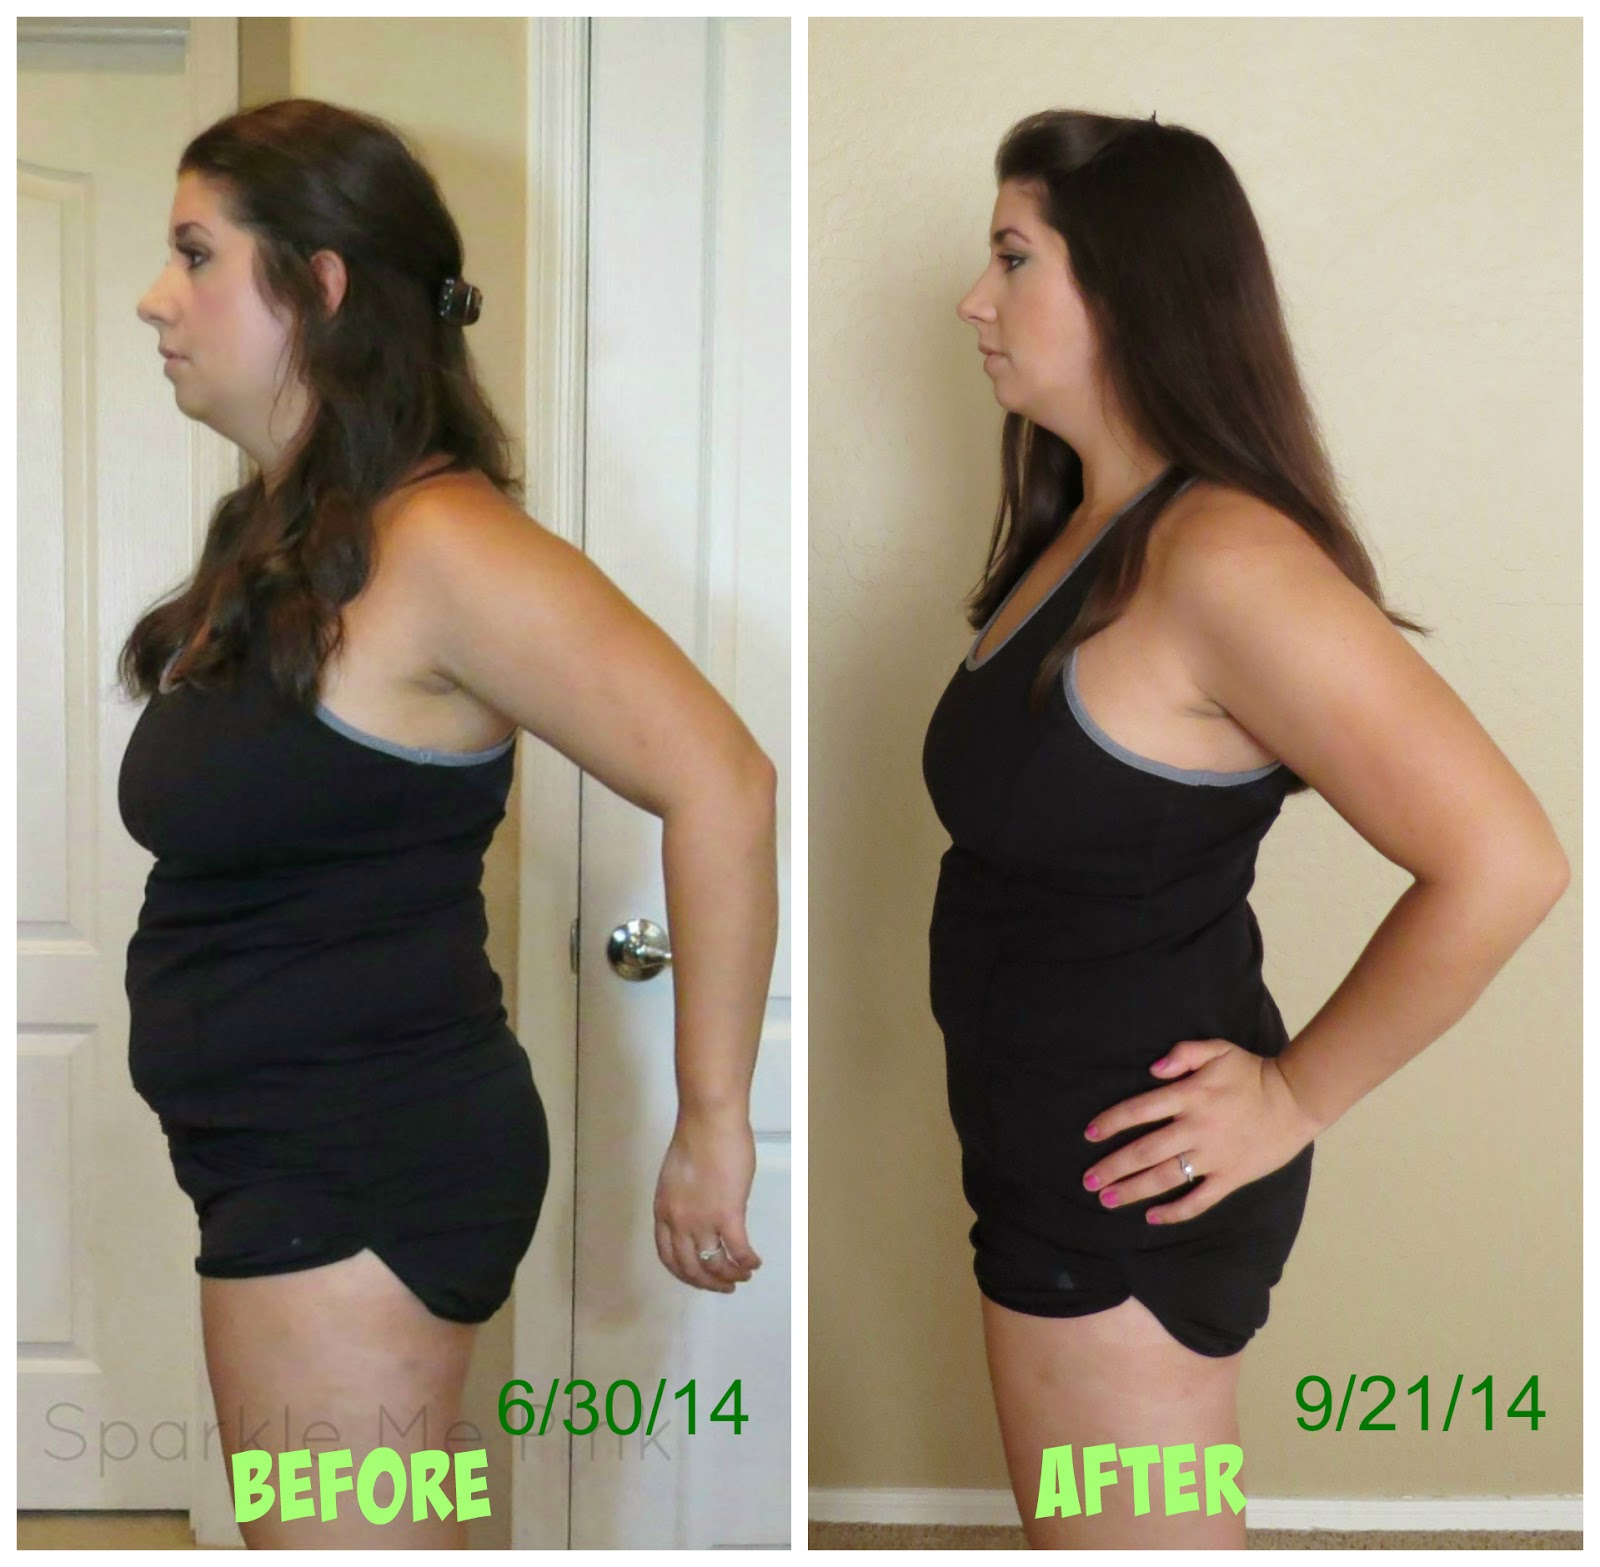 Sparkle Me Pink My Nutrisystem Weight Loss Journey